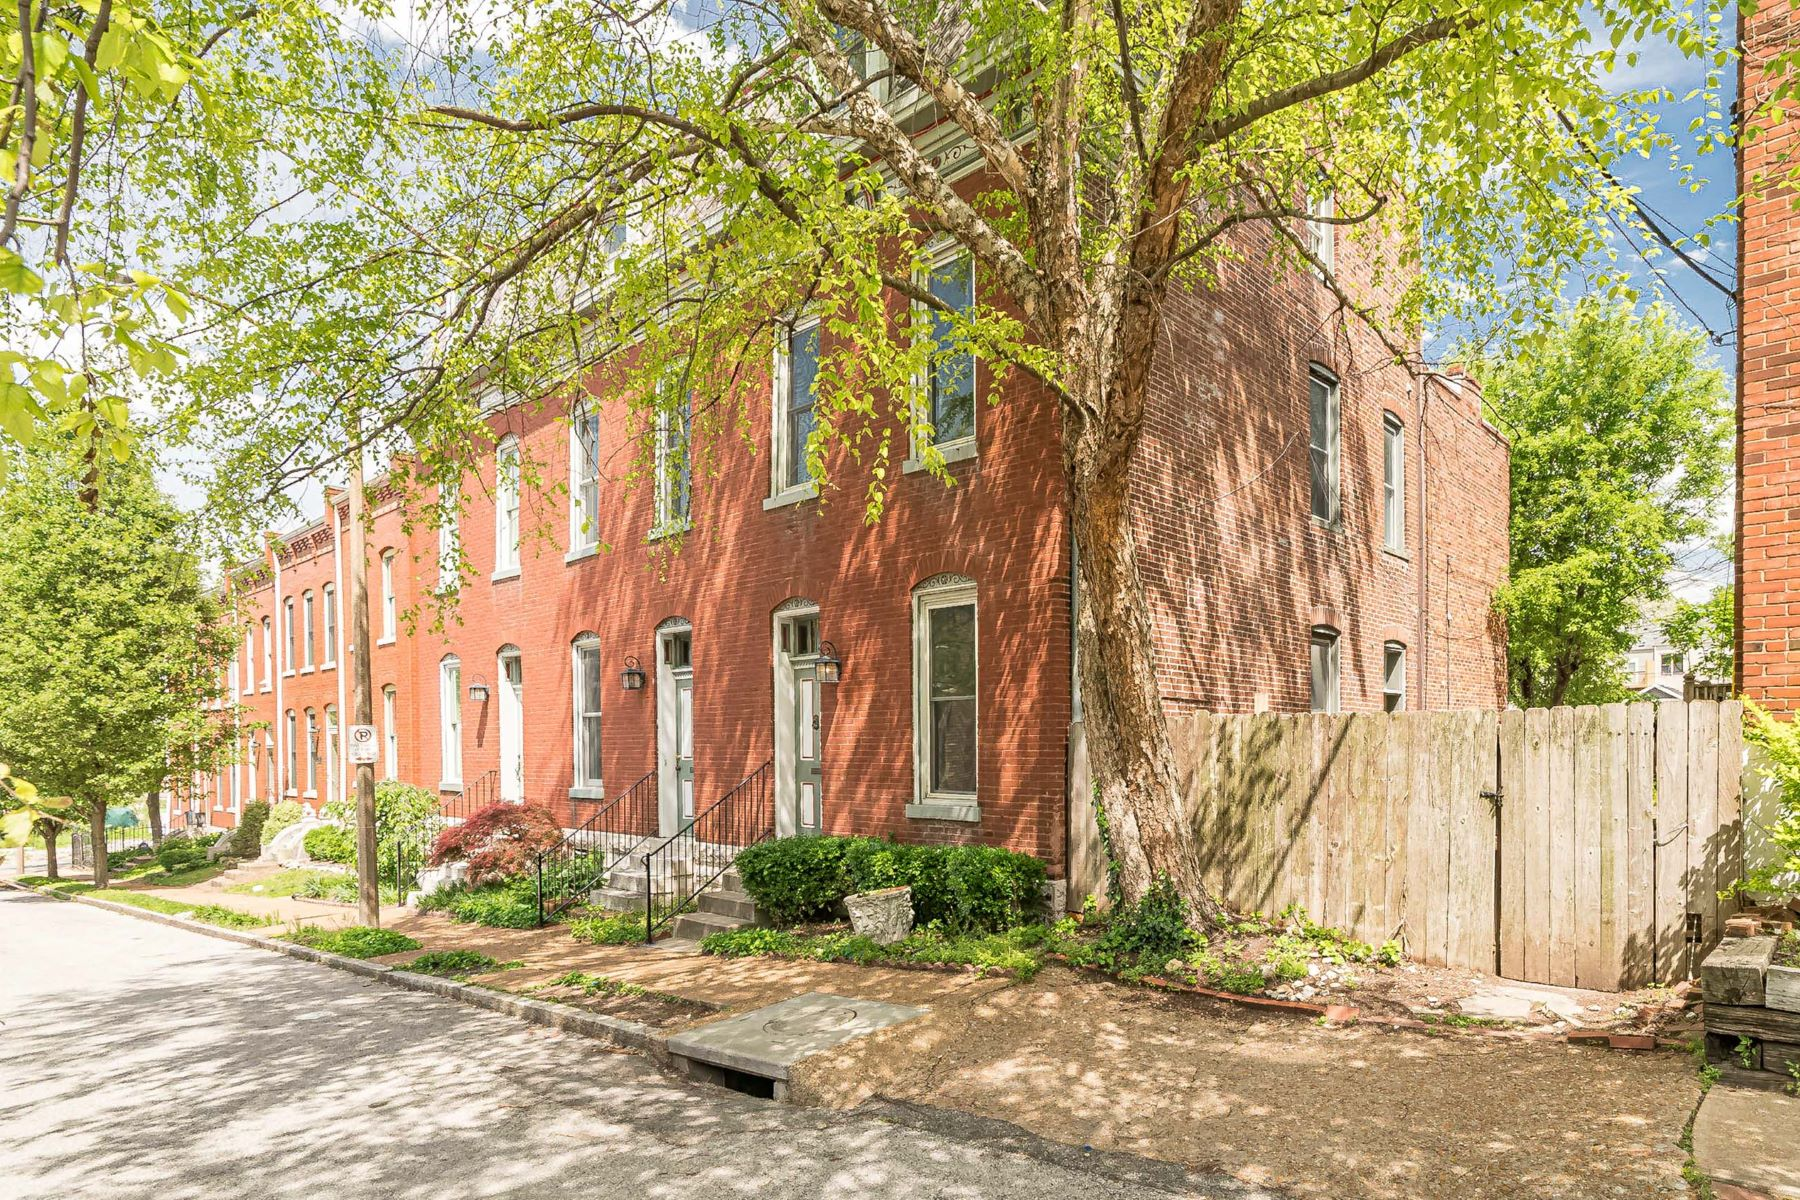 Property for Sale at Beautifully Renovated 2 1/2 Story in Historic Lafayette Square 1214 Missouri Avenue St. Louis, Missouri 63104 United States